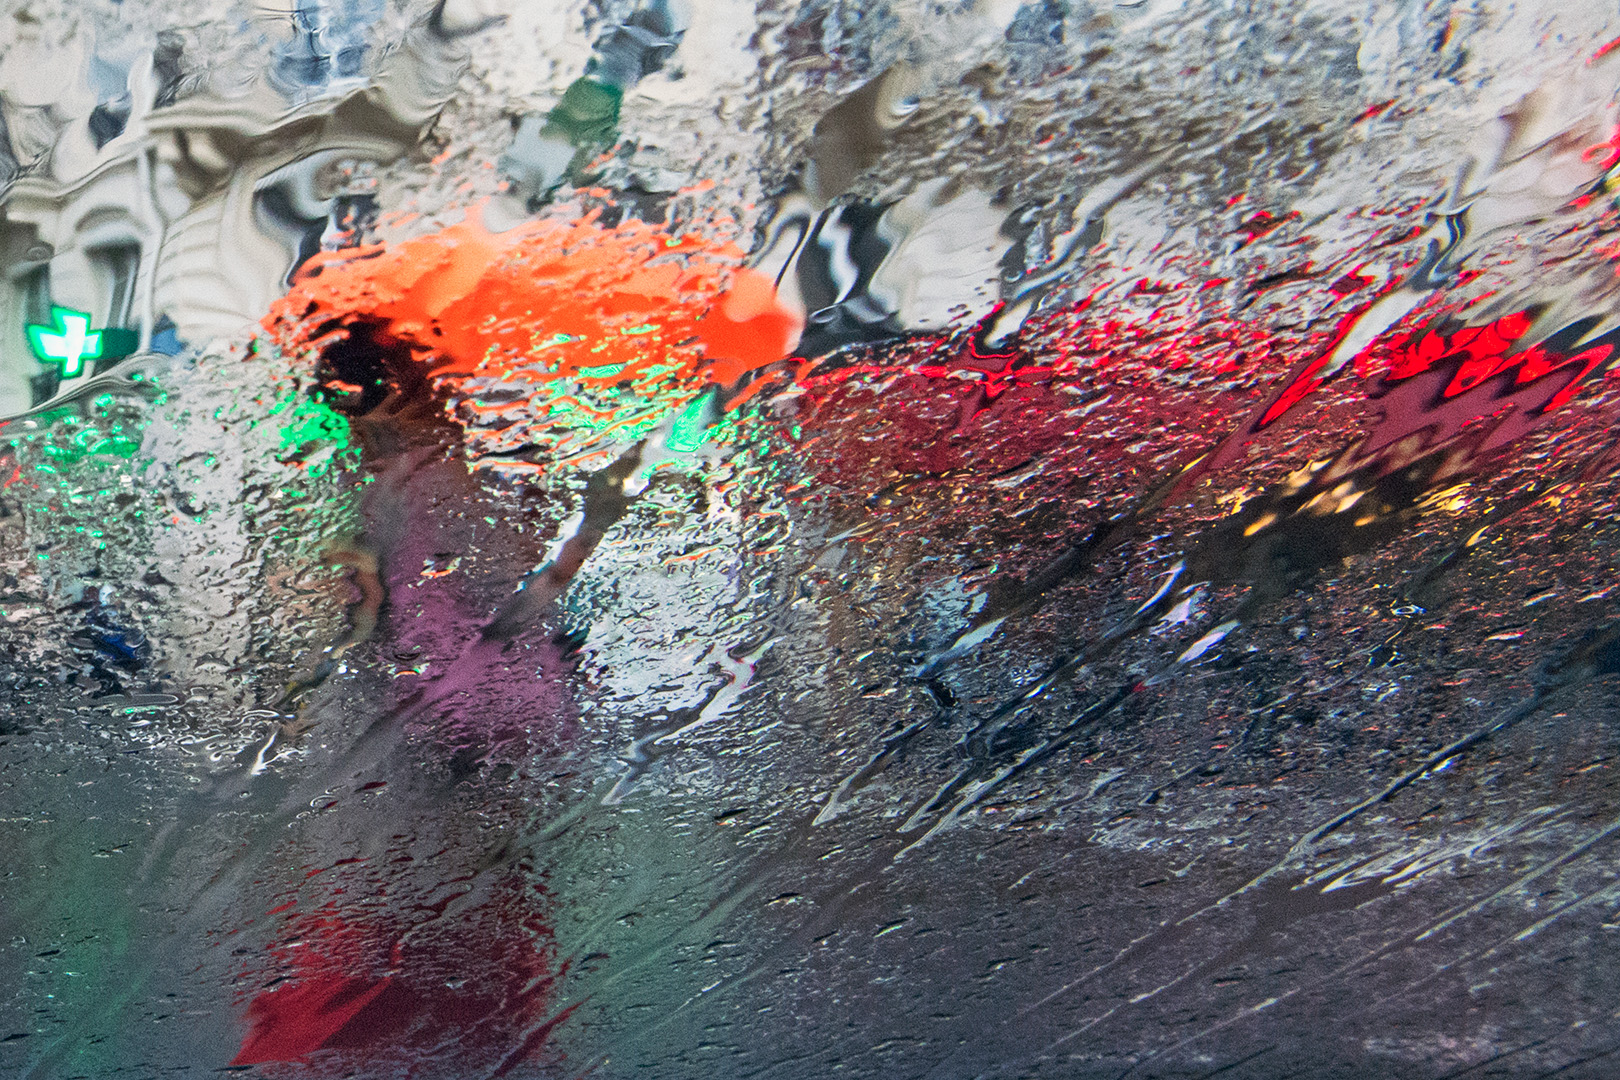 An impressionnist photography, an urban landscape, the lines distorted by a rain curtain